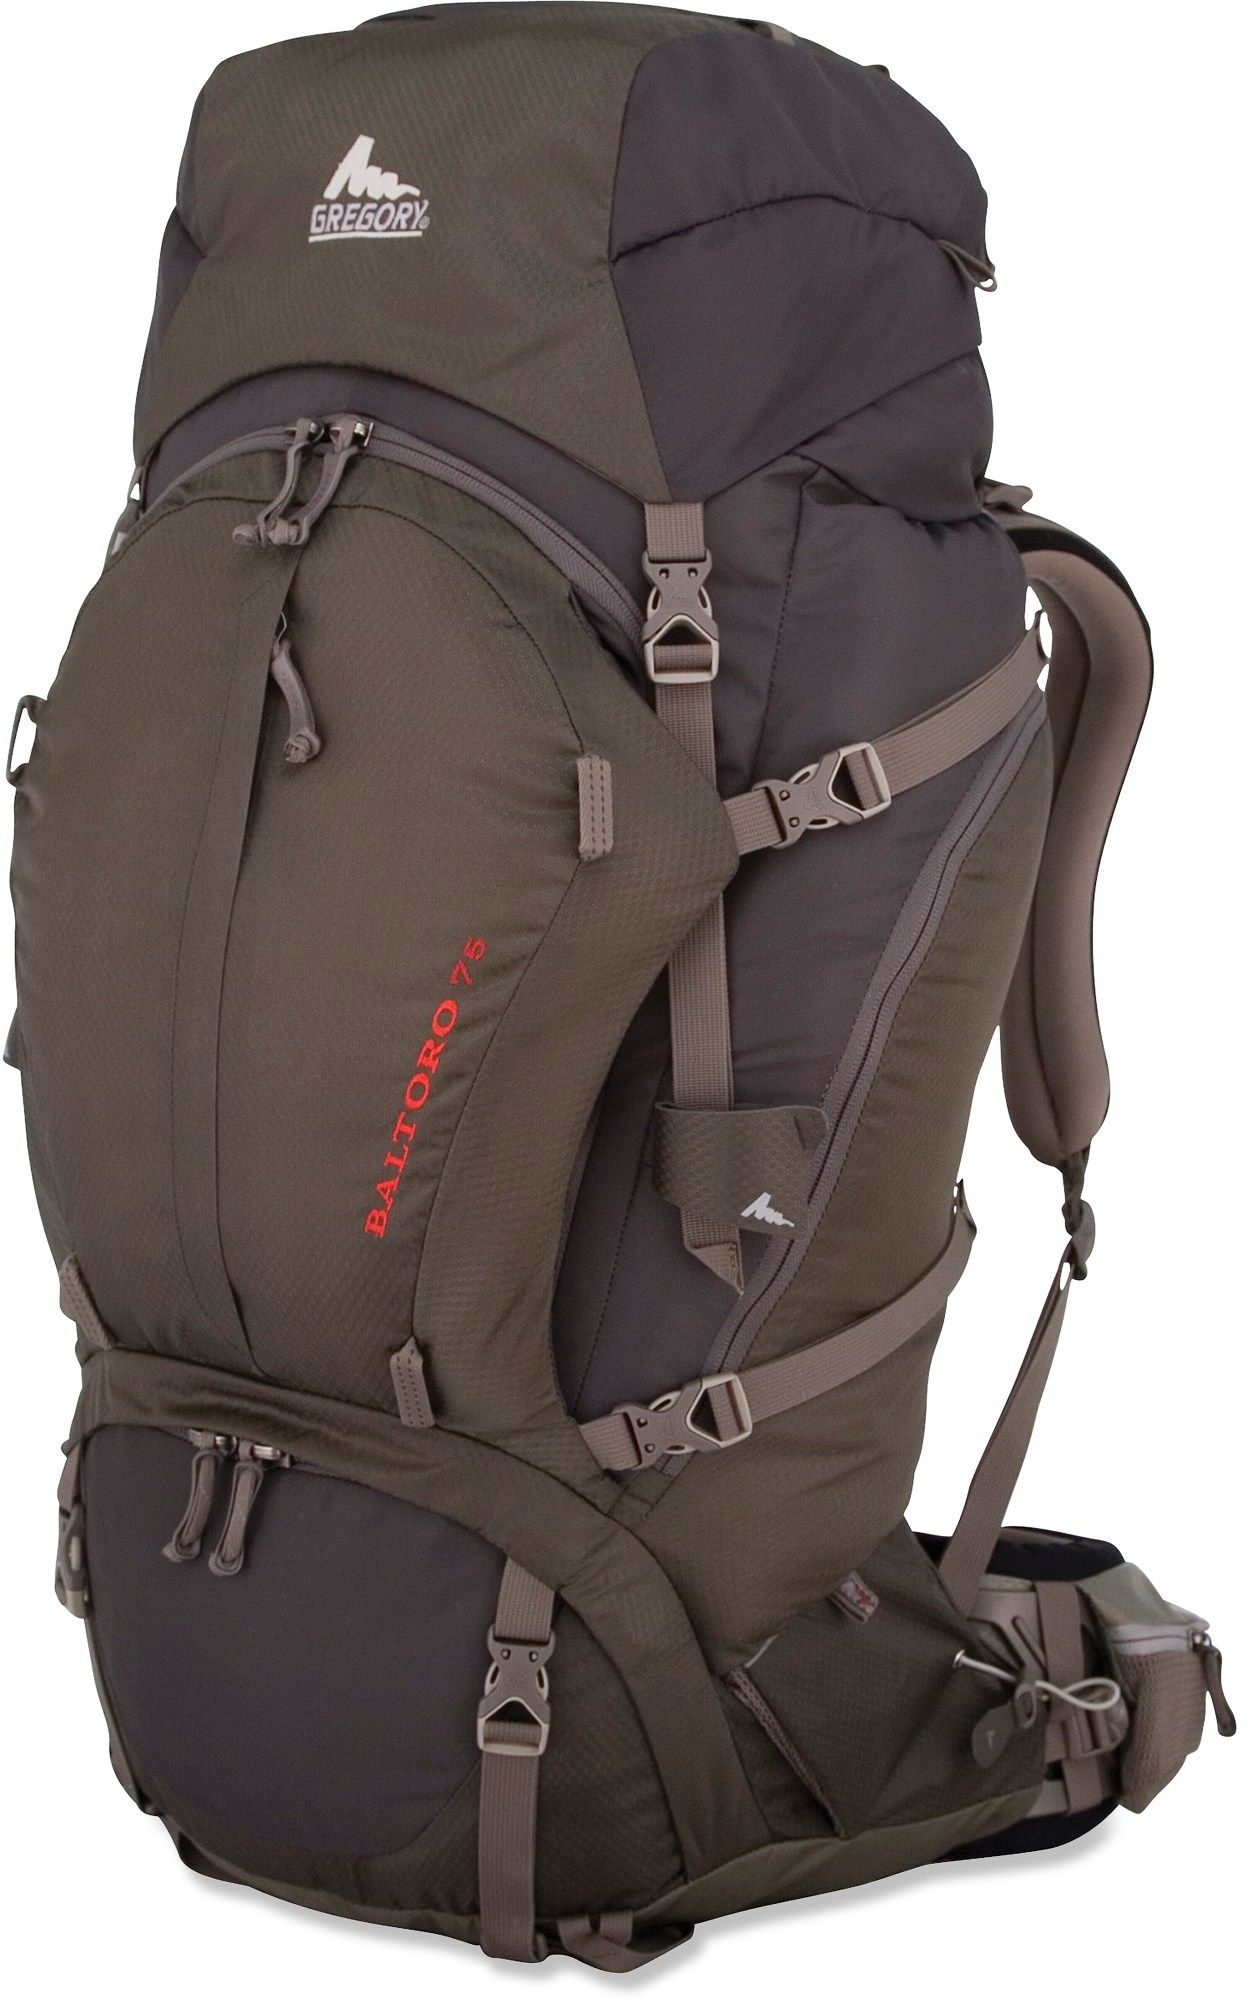 Gregory Baltoro 75 Pack - in Iron Gray $319 with detachable top ...